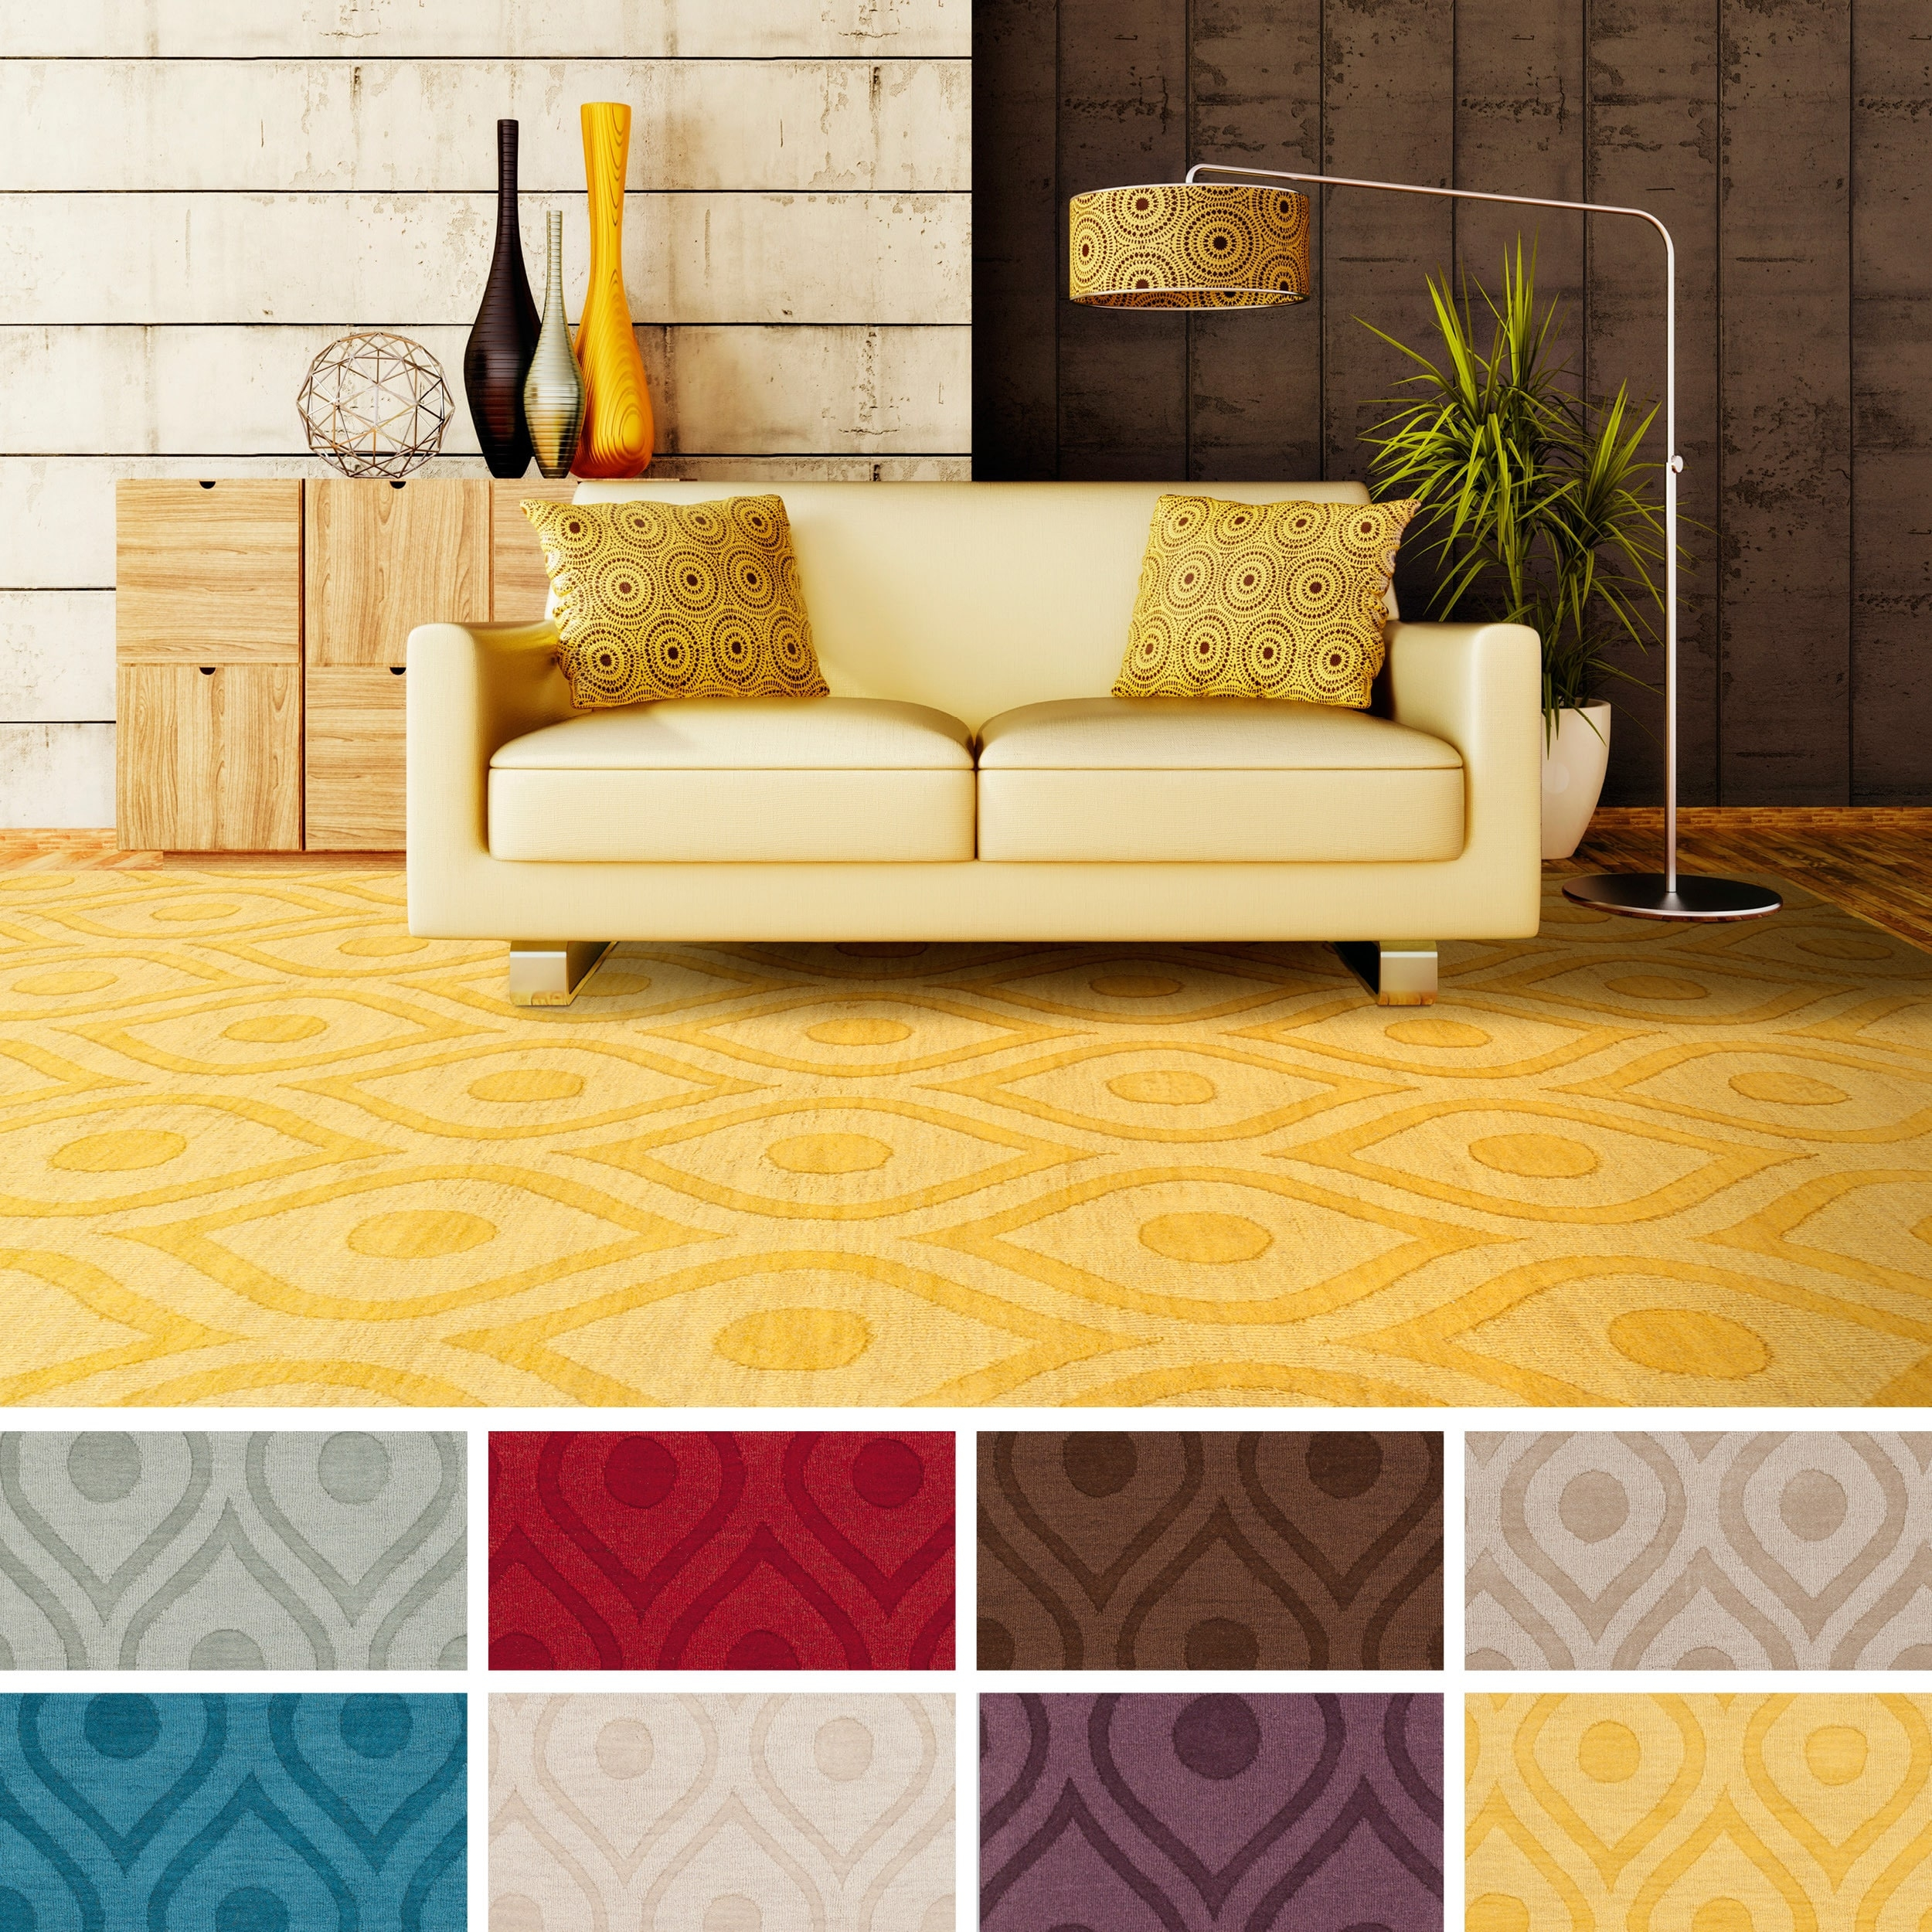 Gold 7 9 10 14 Rugs The Best Brands Today Pertaining To